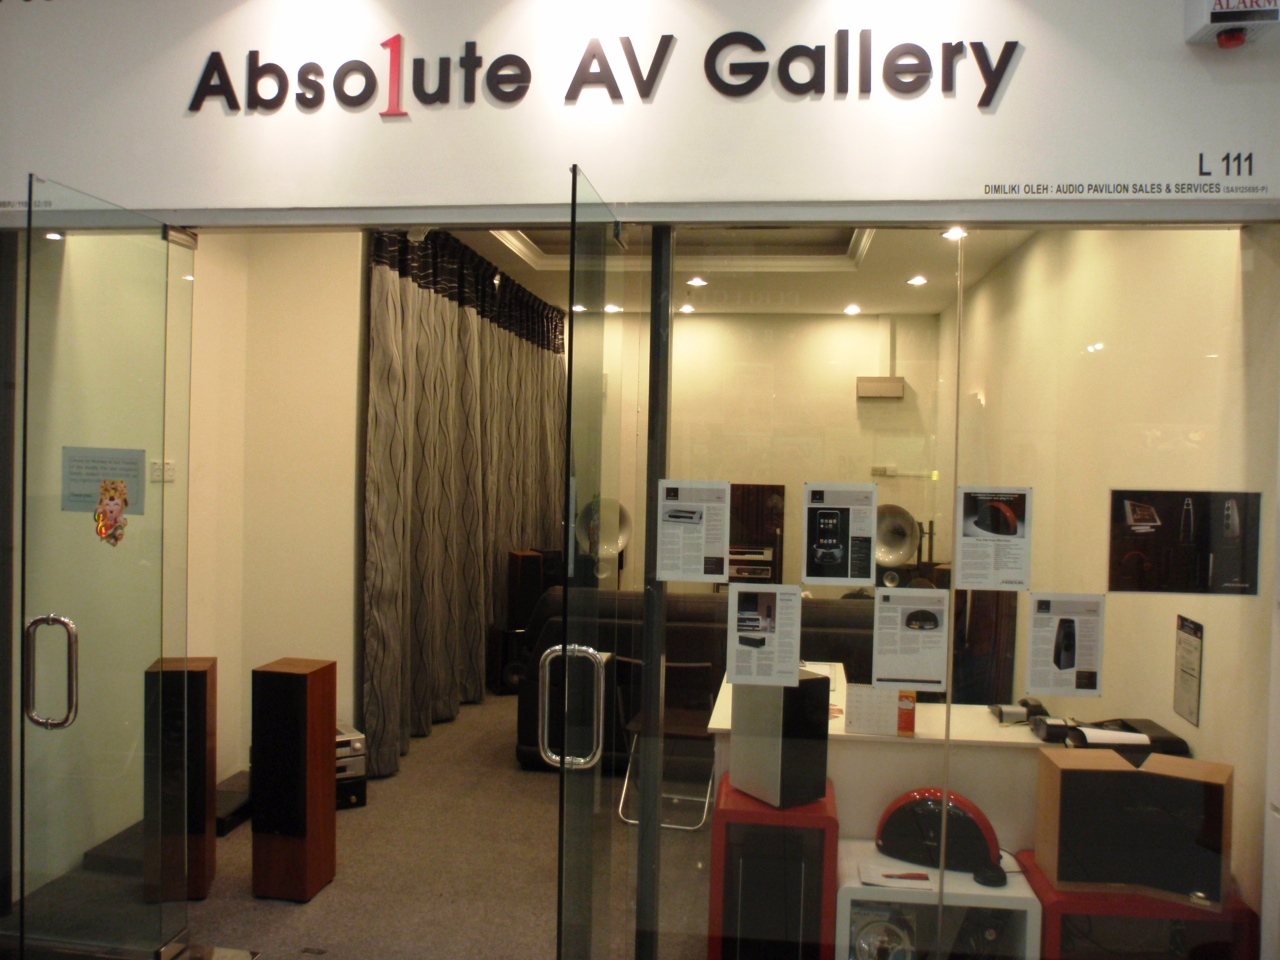 Hifi Shop 24 Hifi Unlimited Absolute Av Gallery In Amcorp Mall